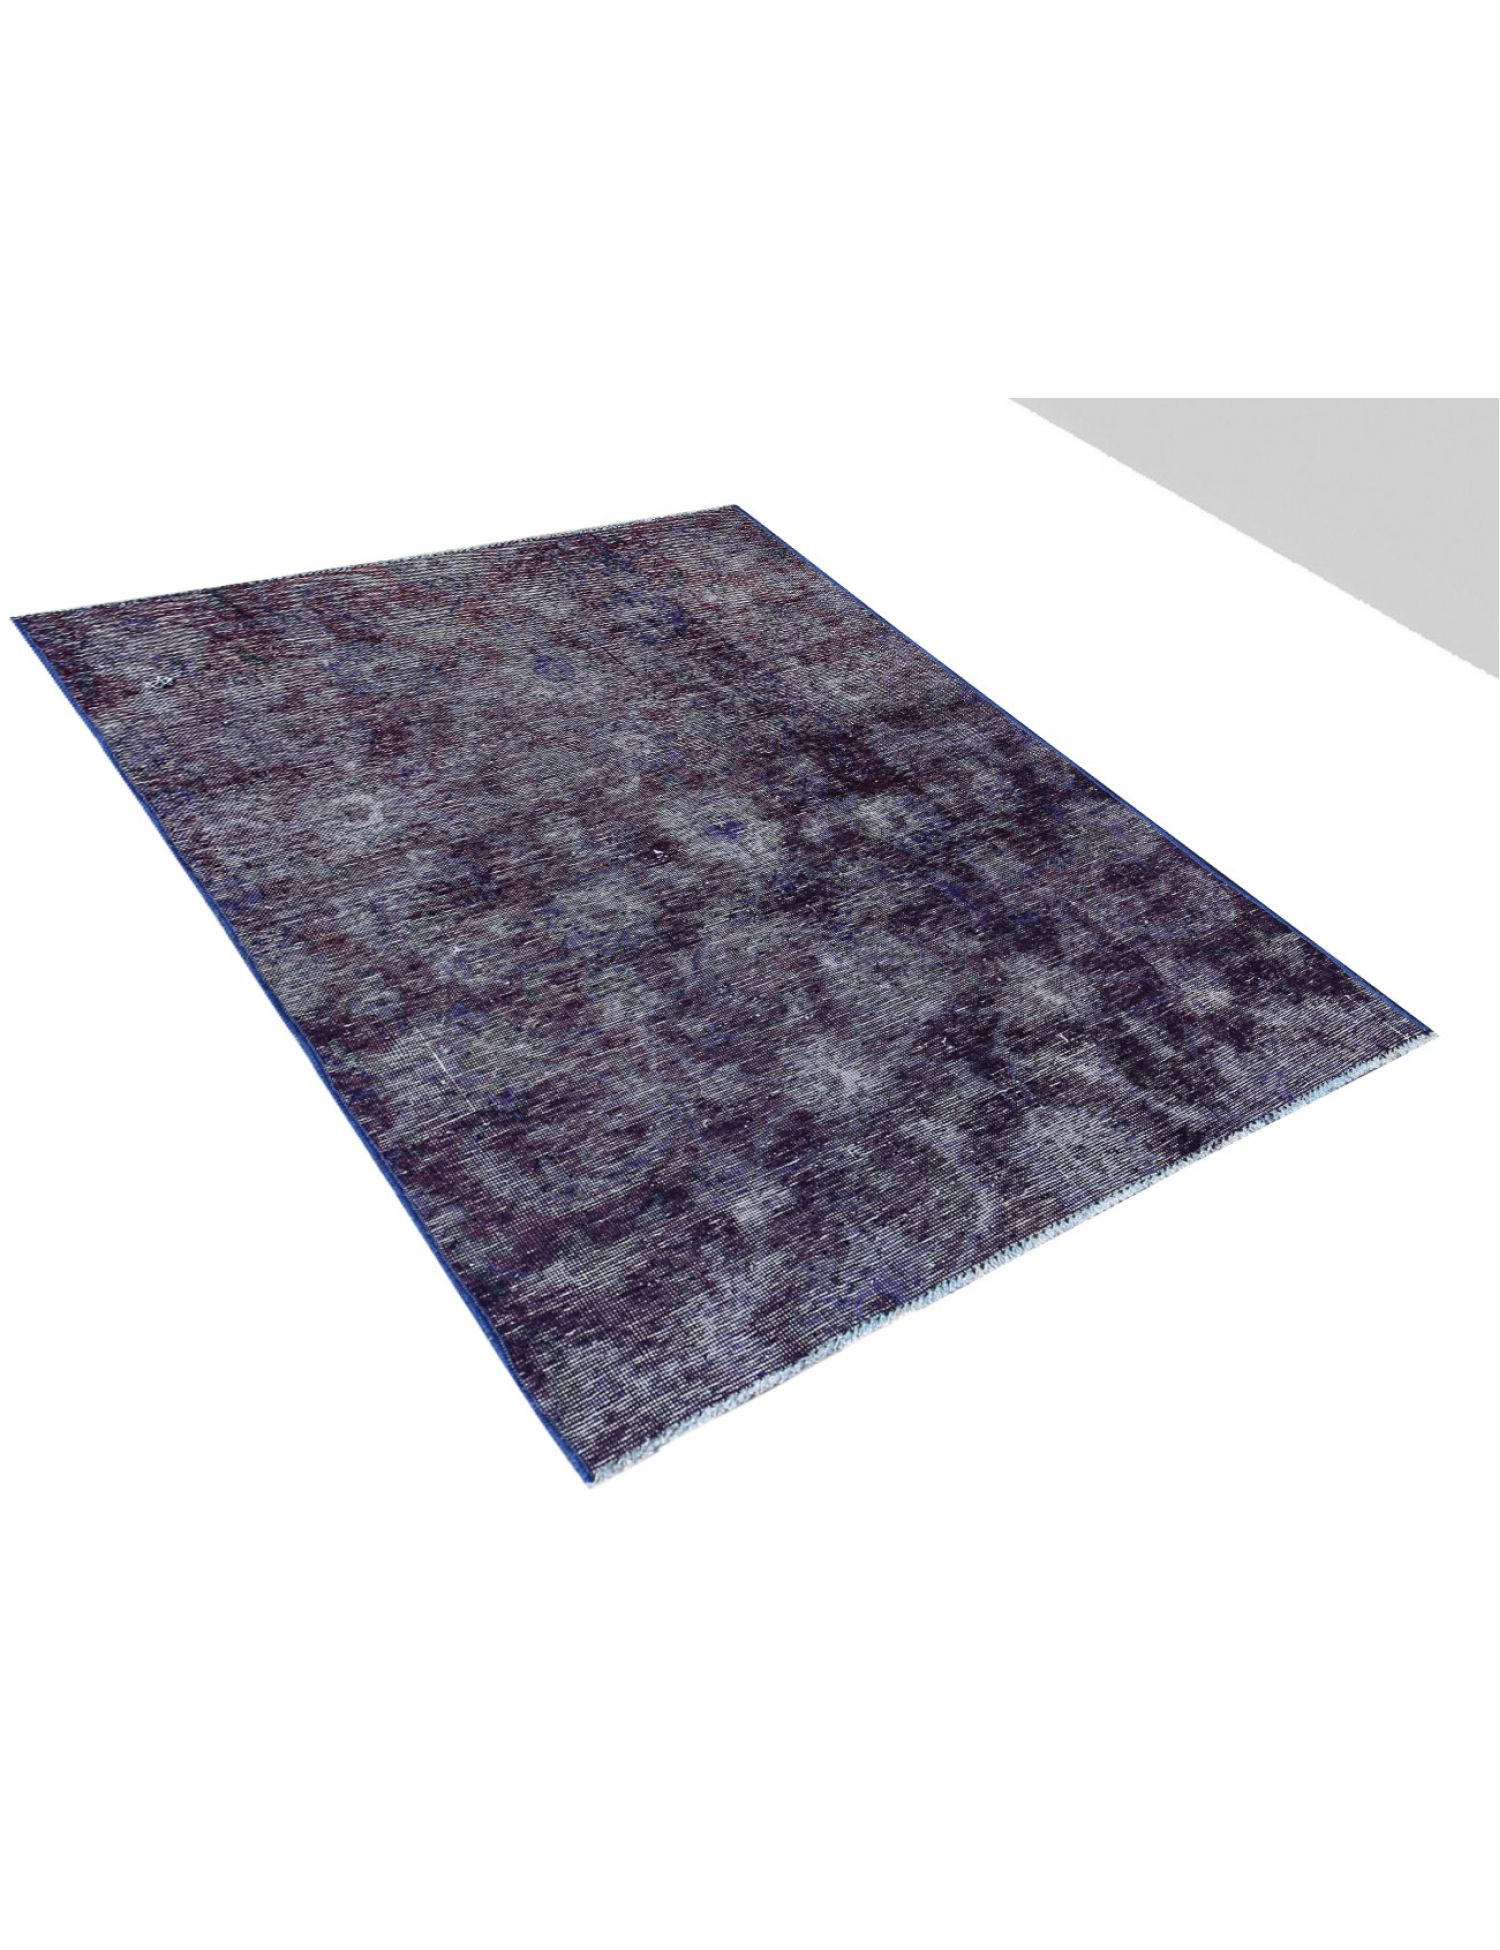 Vintage Carpet  blue <br/>180 x 127 cm